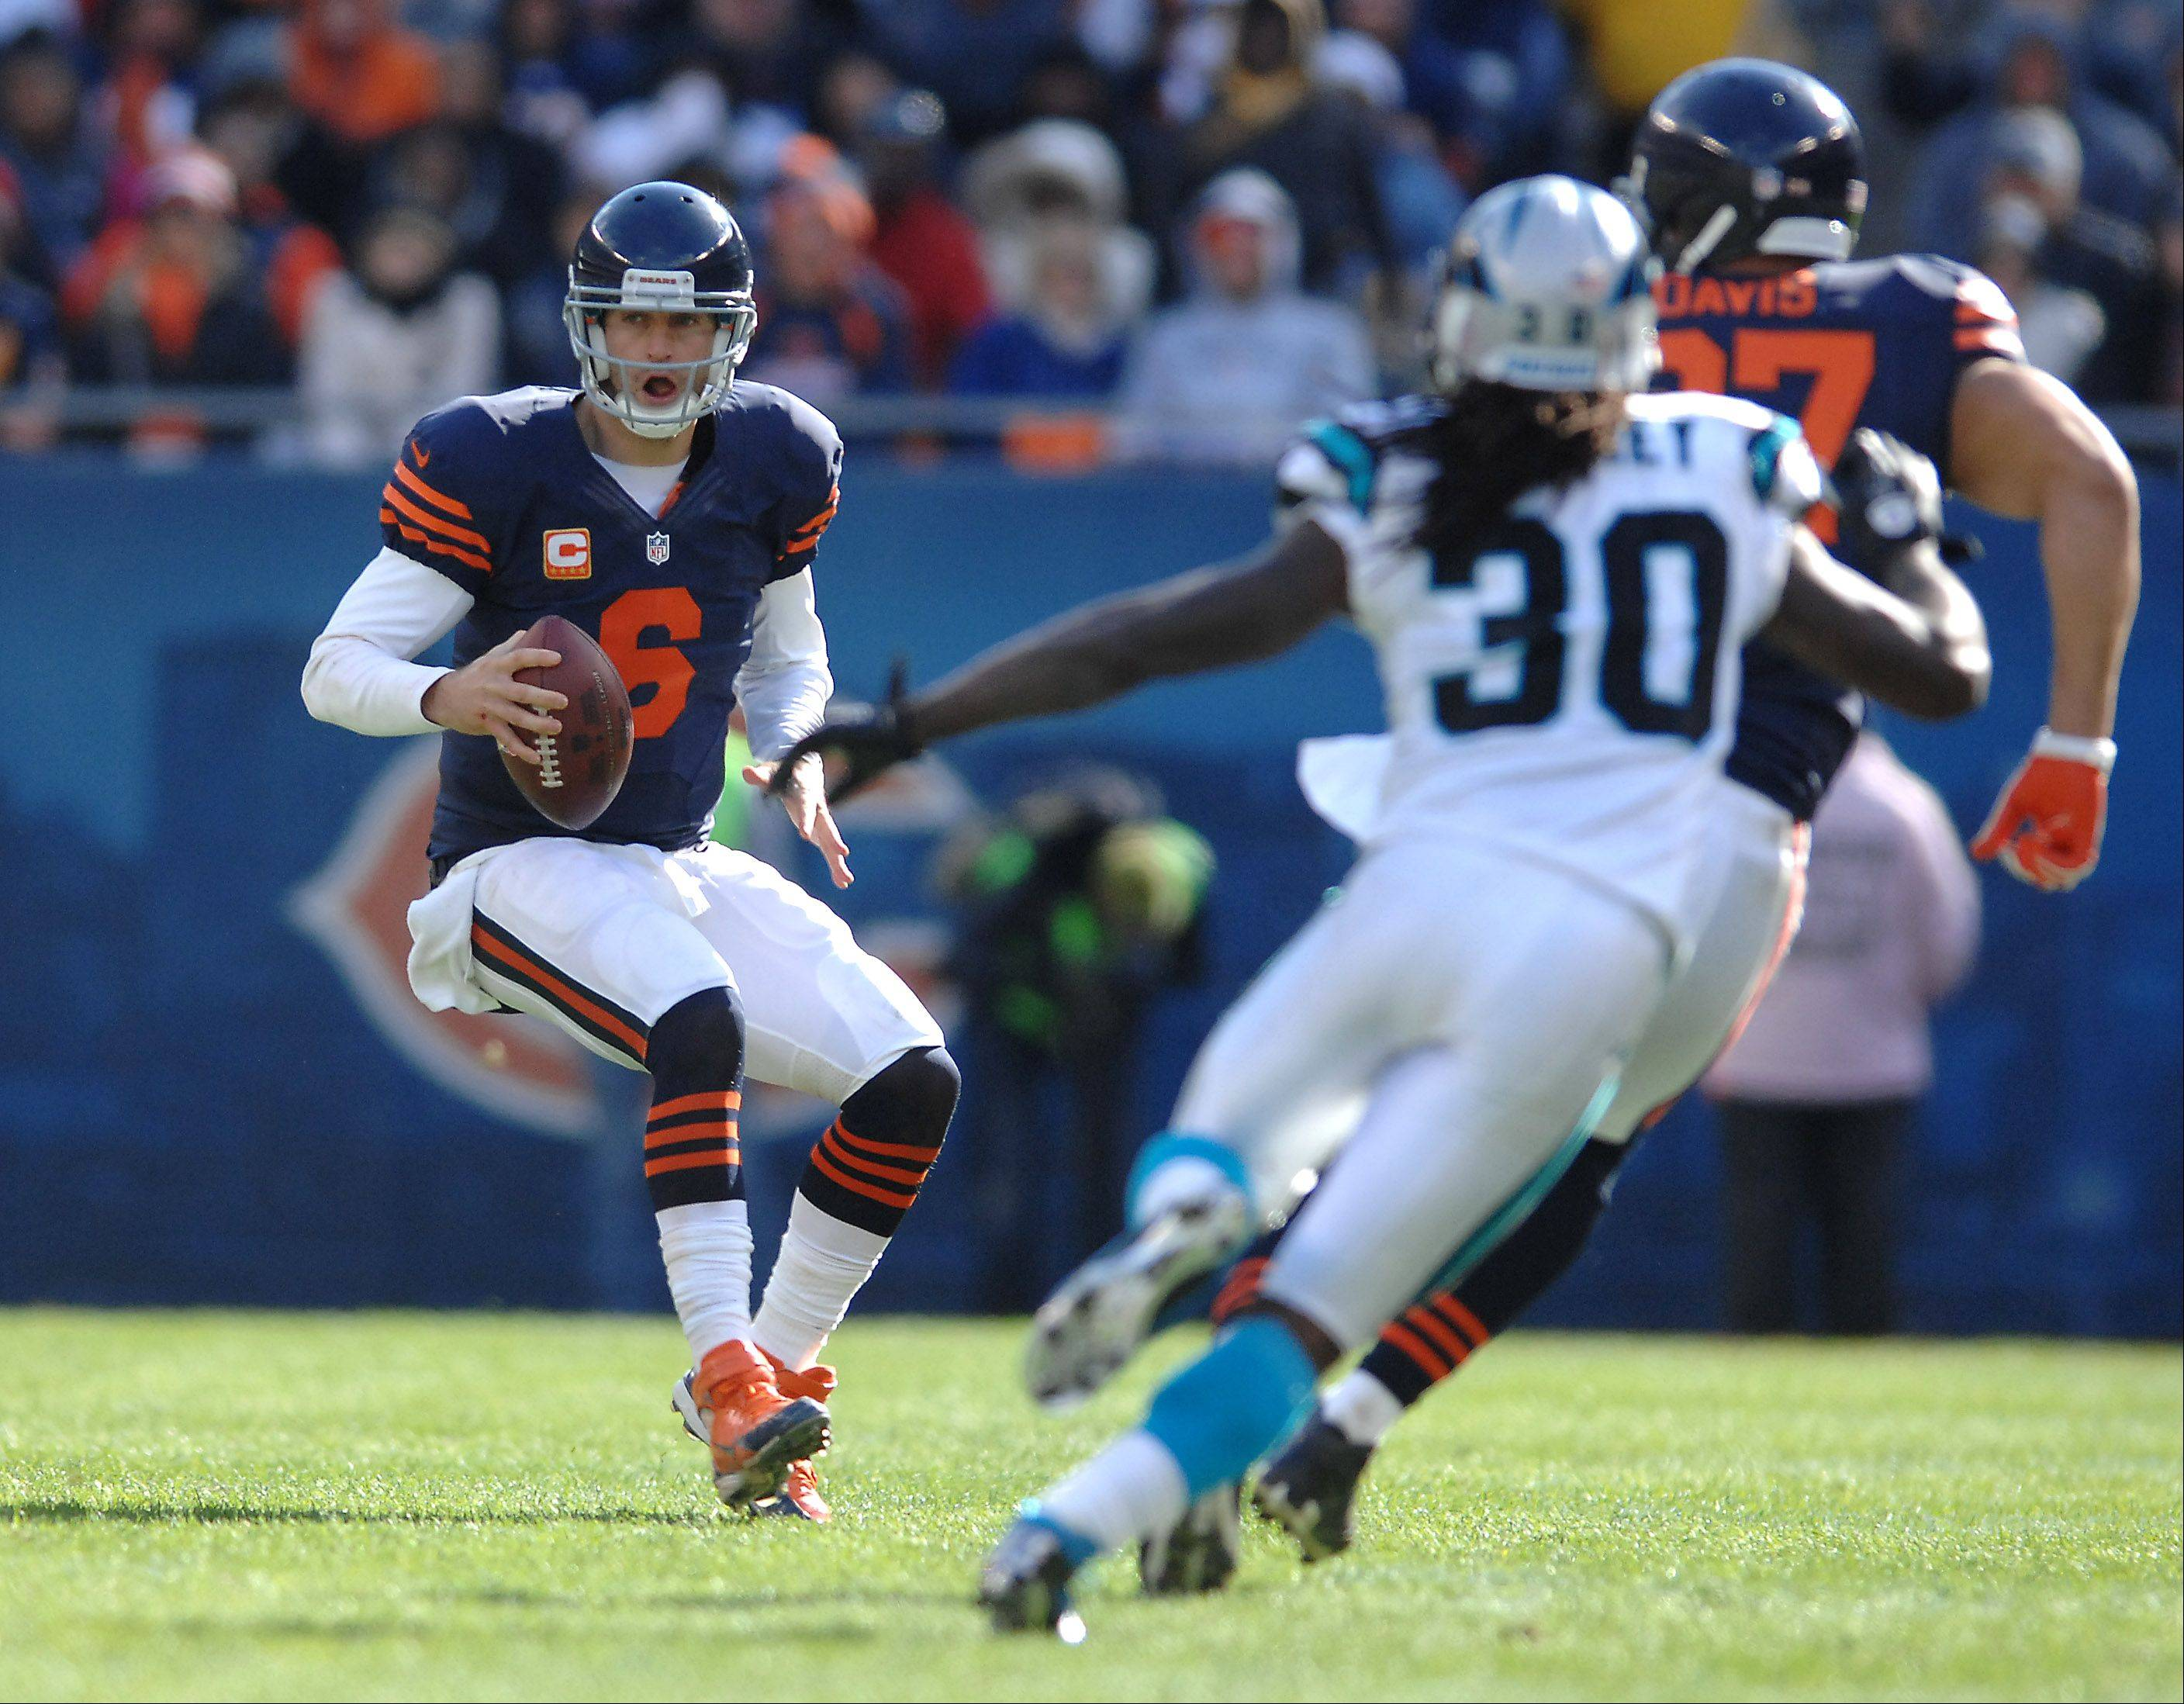 Chicago Bears quarterback Jay Cutler (6) scrambles for a short gain against Carolina during Sunday's game at Soldier Field in Chicago.